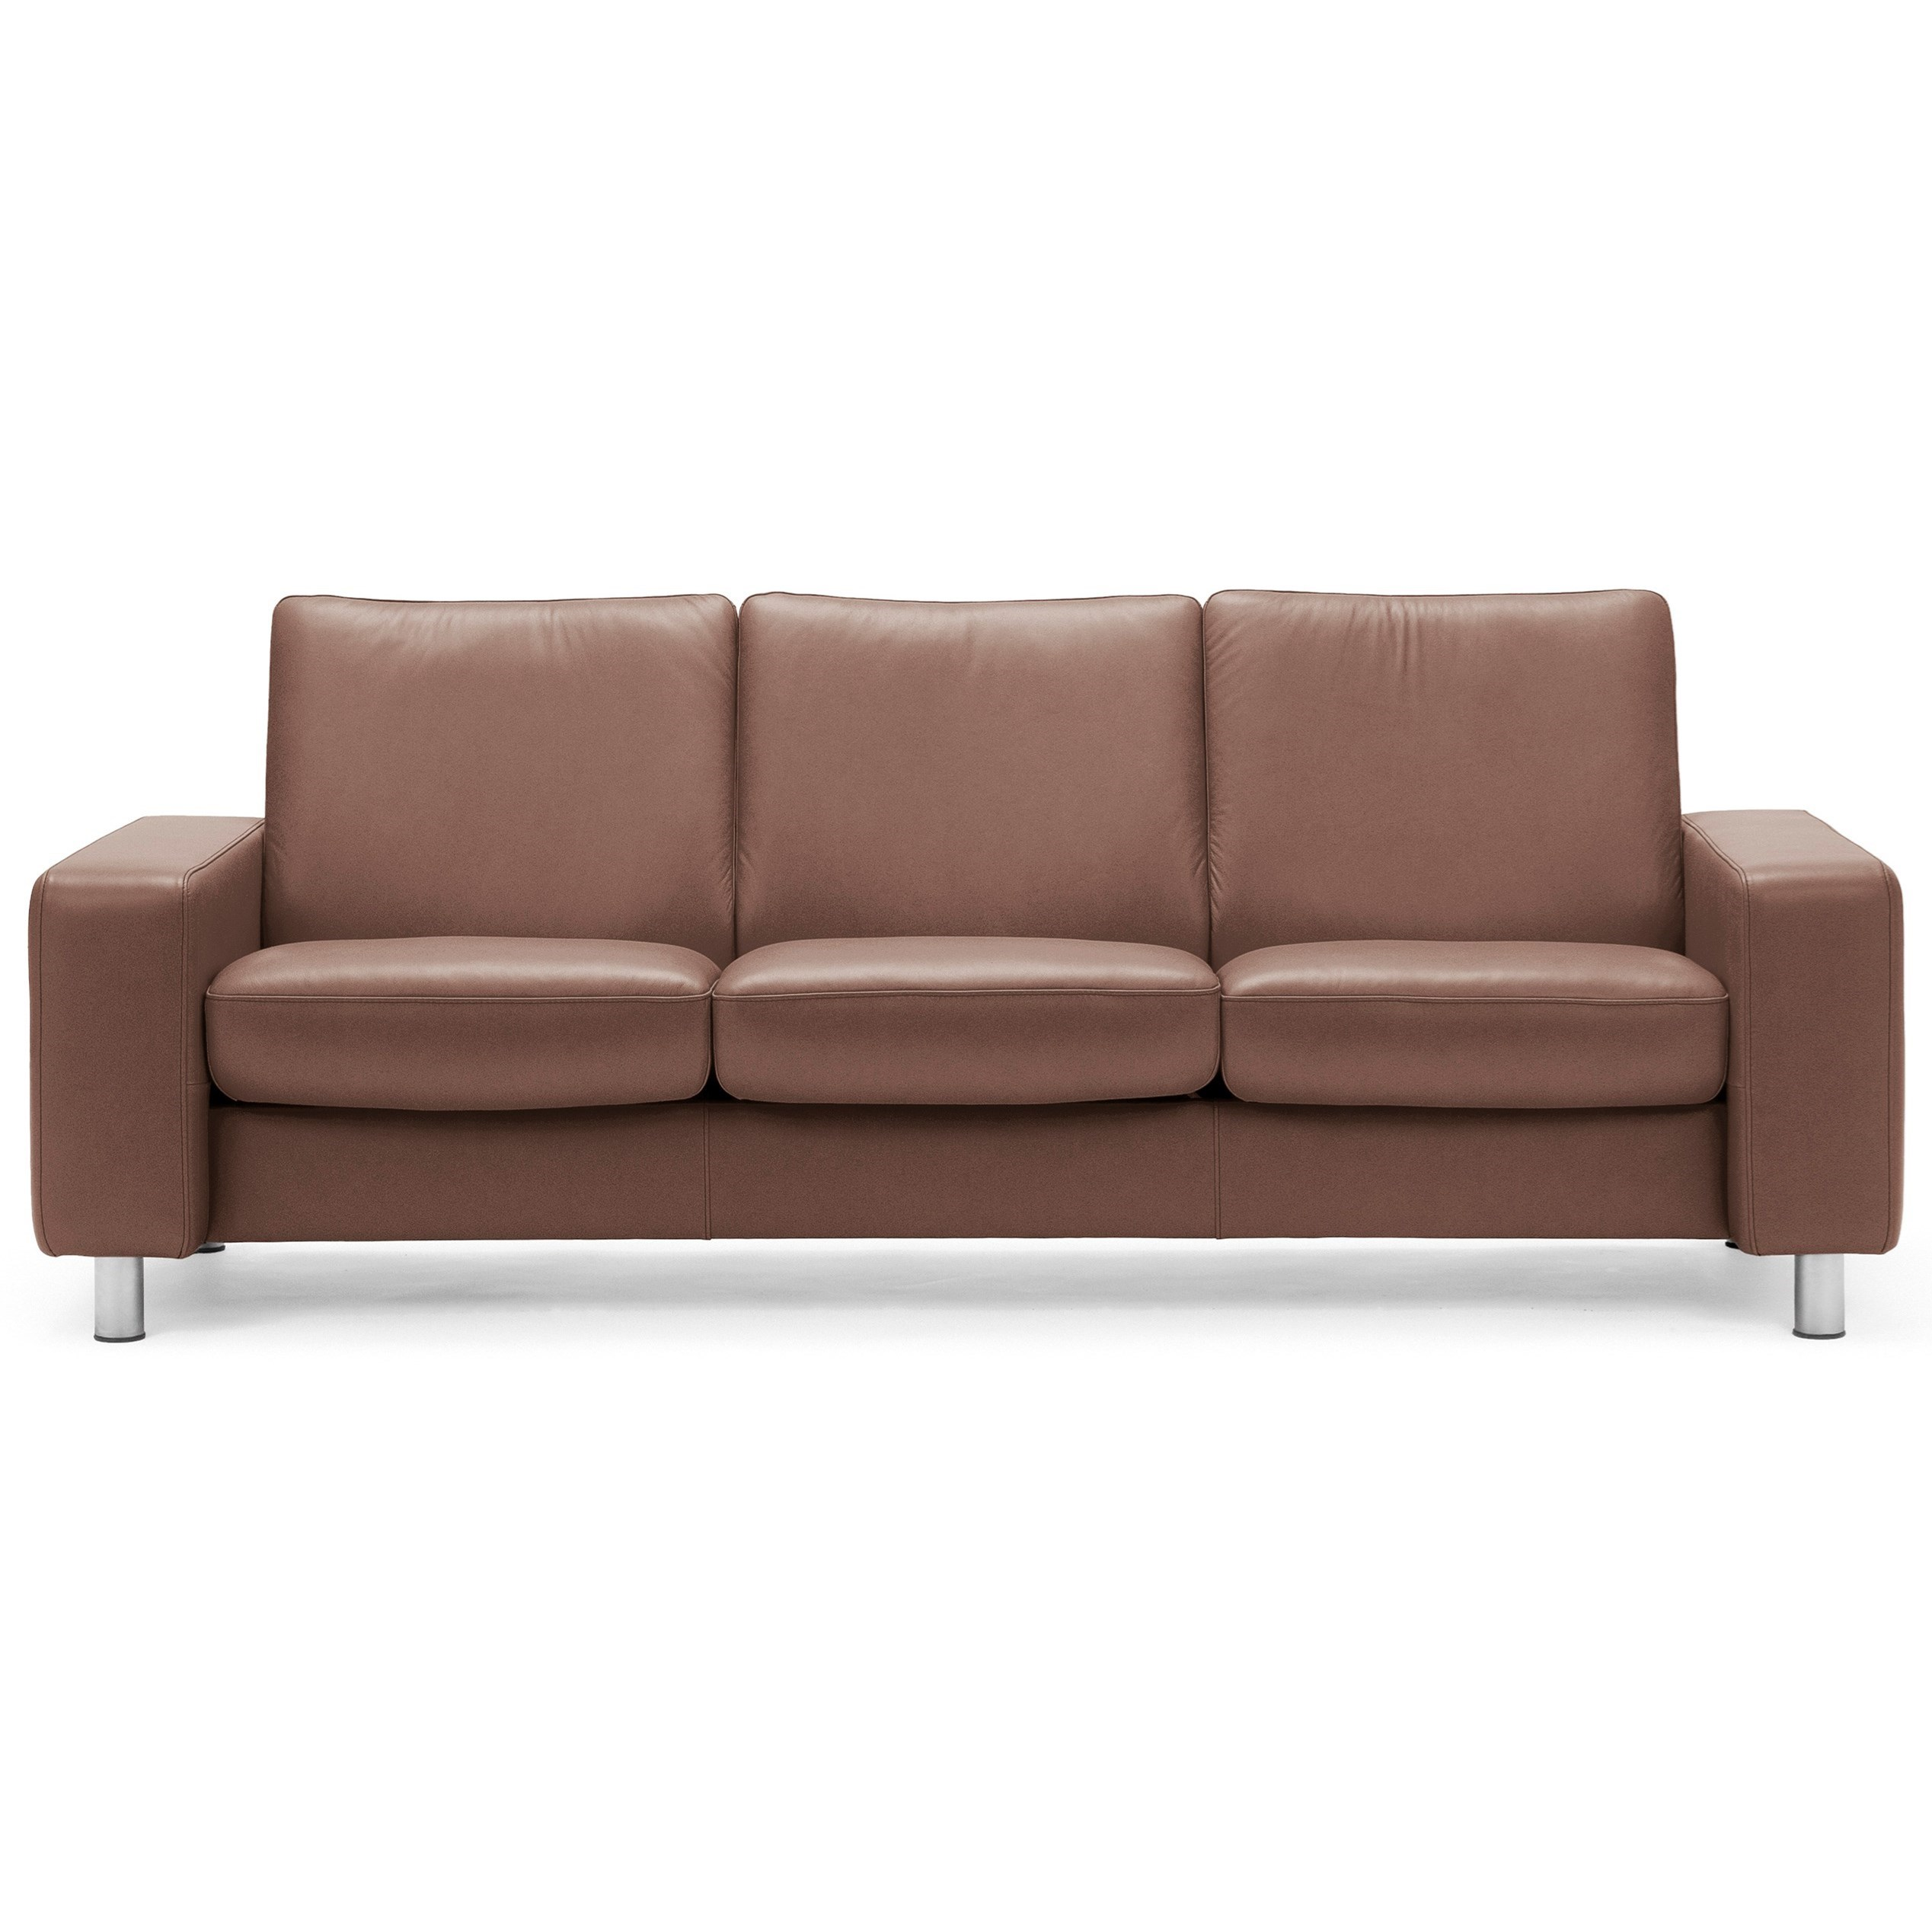 Arion 19 - A20 Low-Back Reclining Sofa by Stressless at Sprintz Furniture